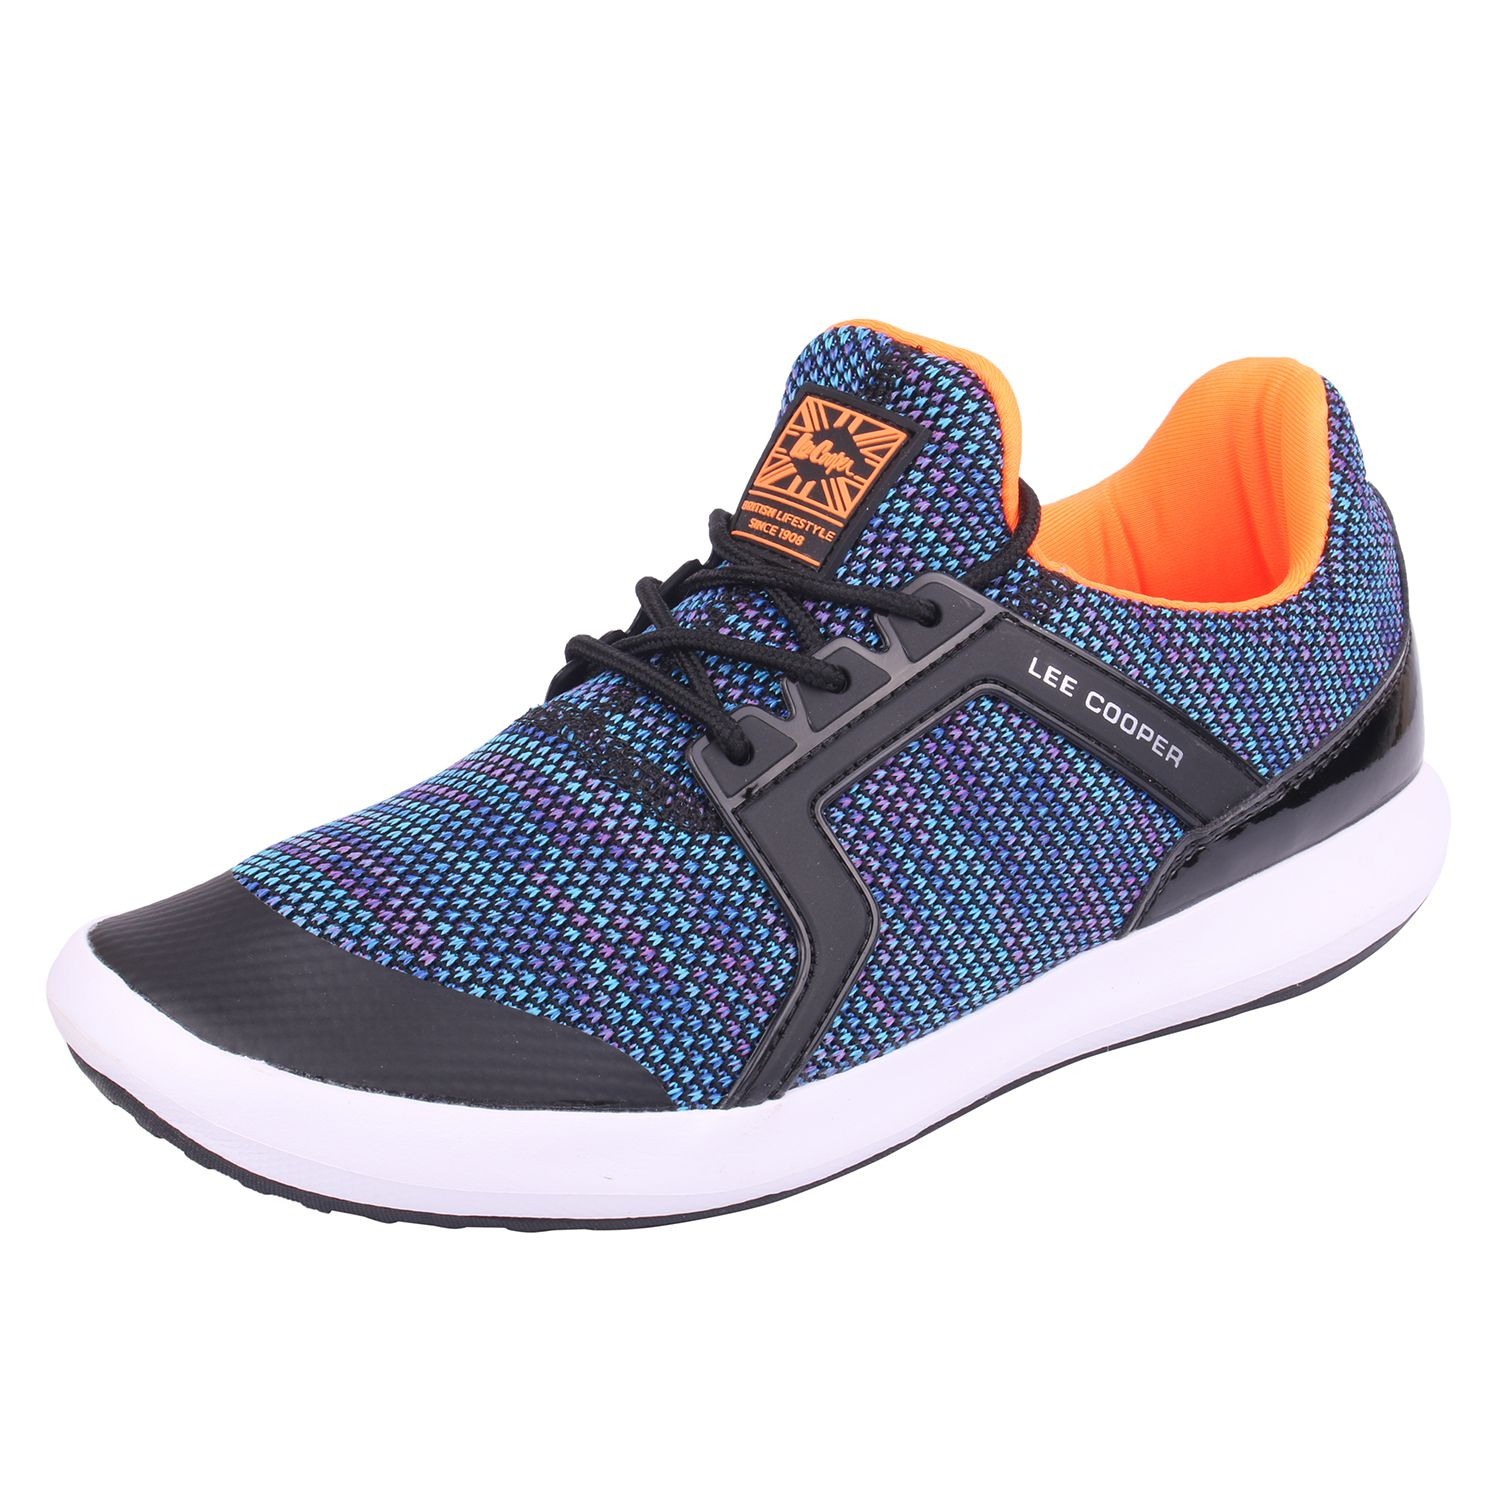 0960a8a446 Lee Cooper Running Shoes: Buy Online at Best Price on Snapdeal